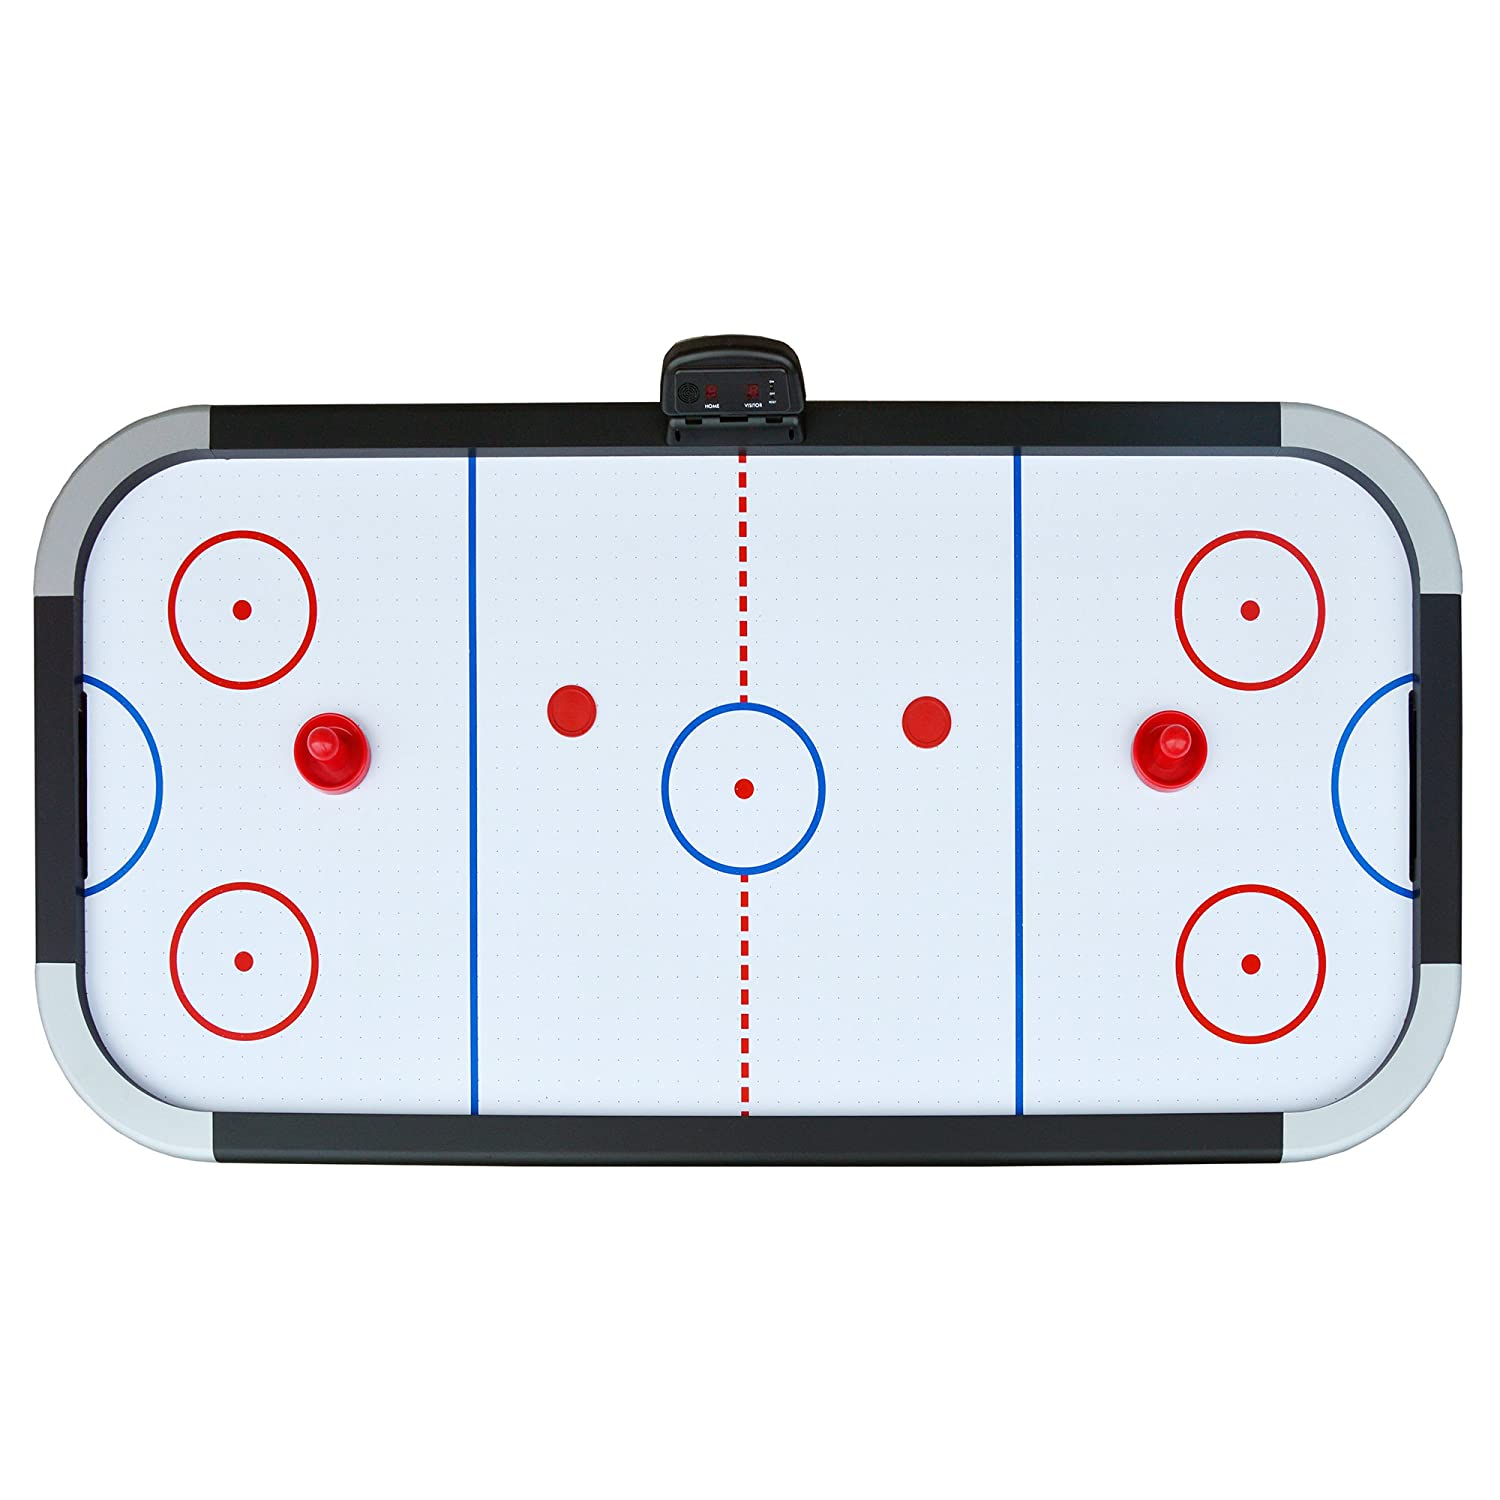 Exceptionnel Amazon.com : Hathaway Silverstreak 5 Foot Air Hockey Game Table For Family  Game Rooms With Electronic Scoring, Pucks U0026 Strikers : Sports U0026 Outdoors